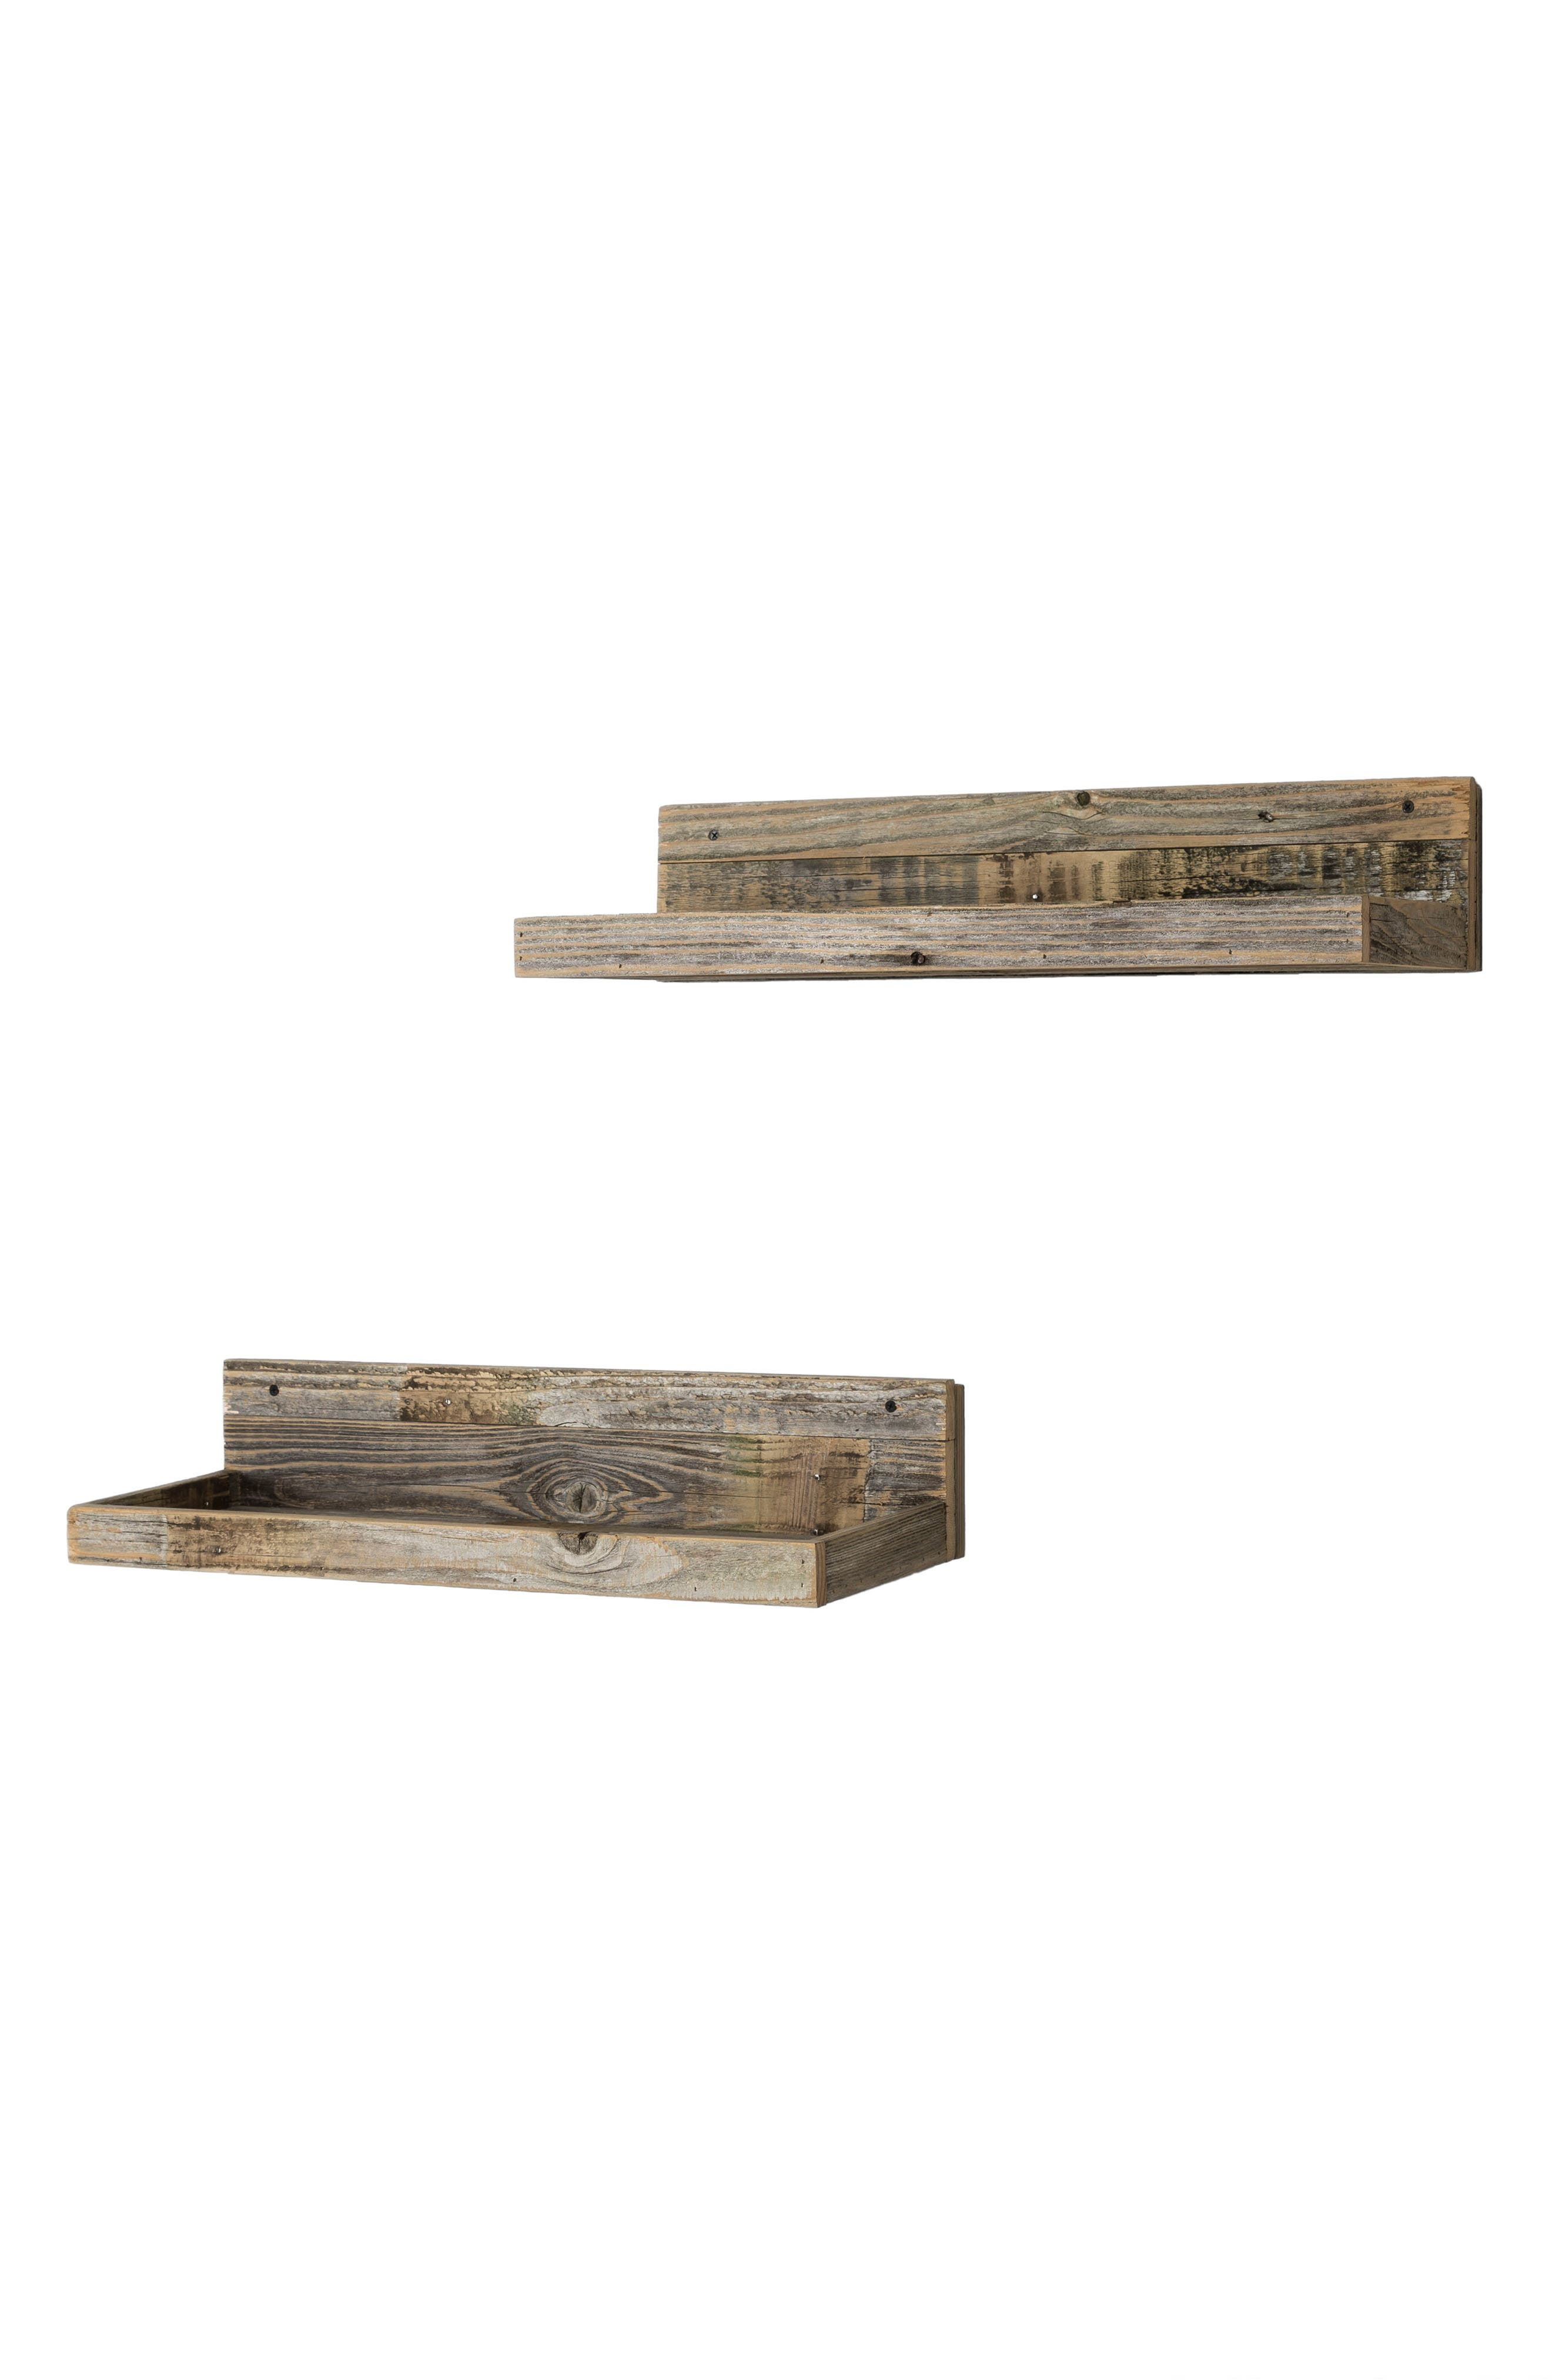 Set of 2 Floating Reclaimed Barnwood Shelves,                             Alternate thumbnail 2, color,                             Natural